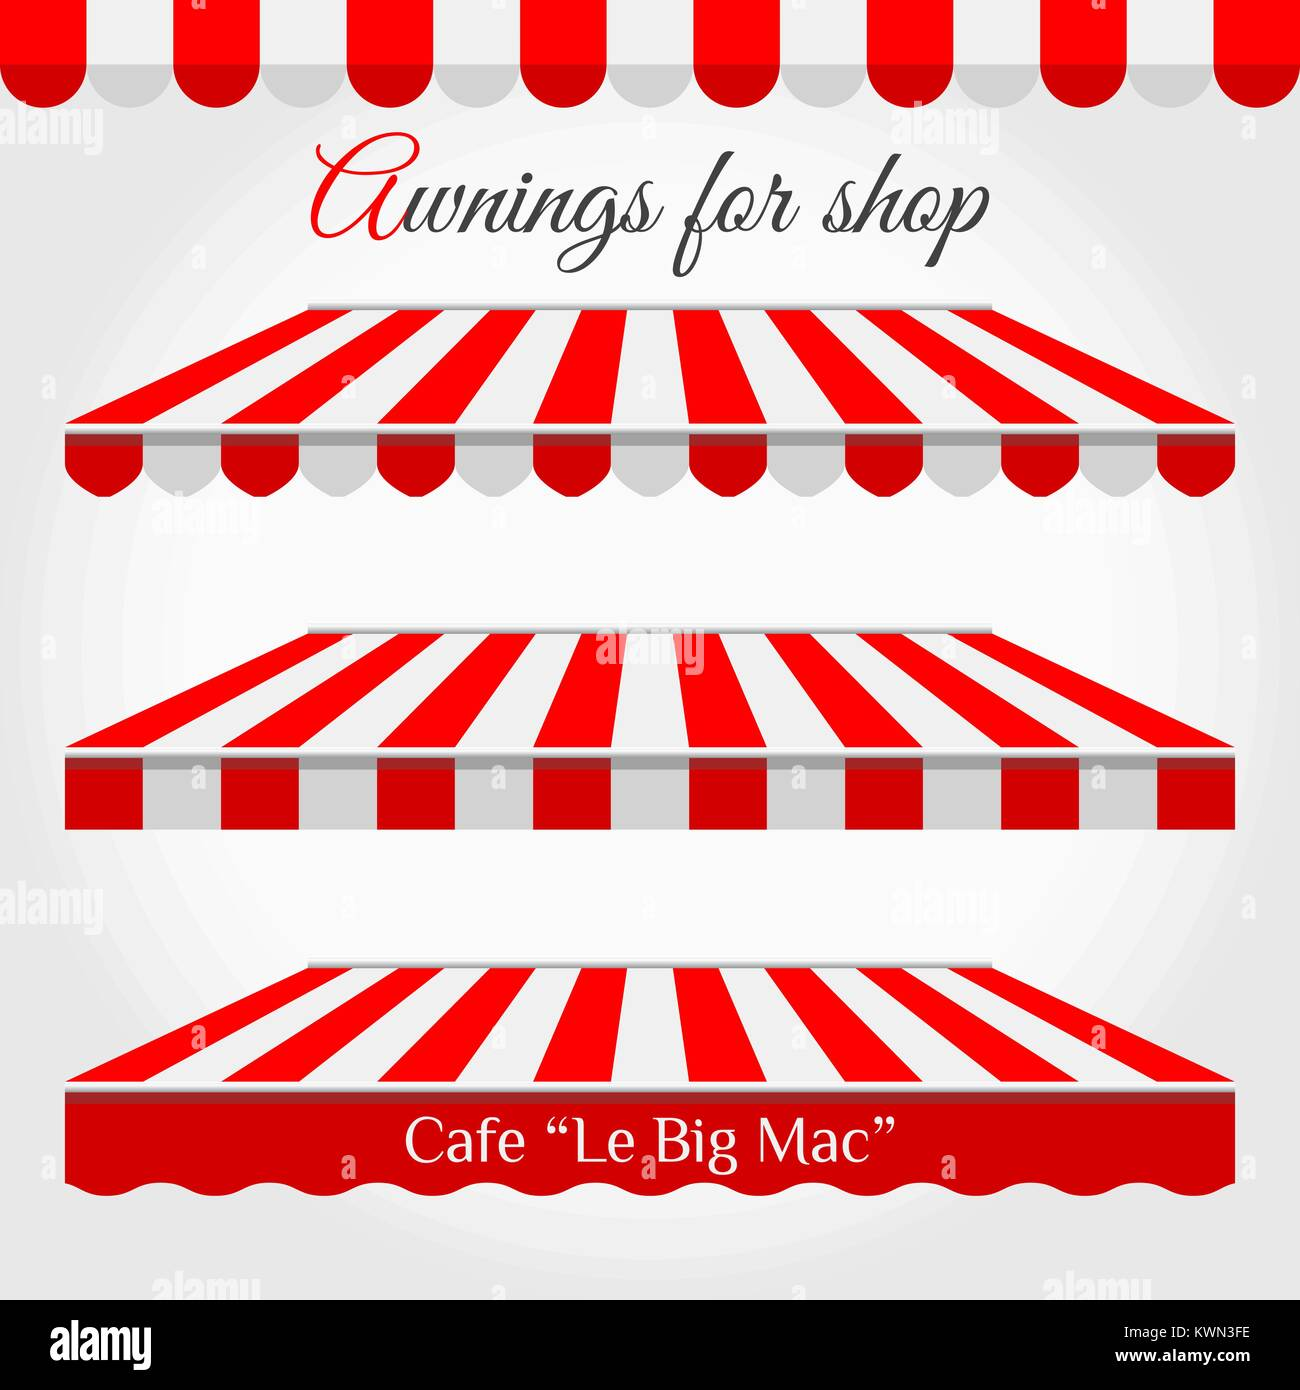 Striped Awnings for Shop in Different Forms. Red and White ...